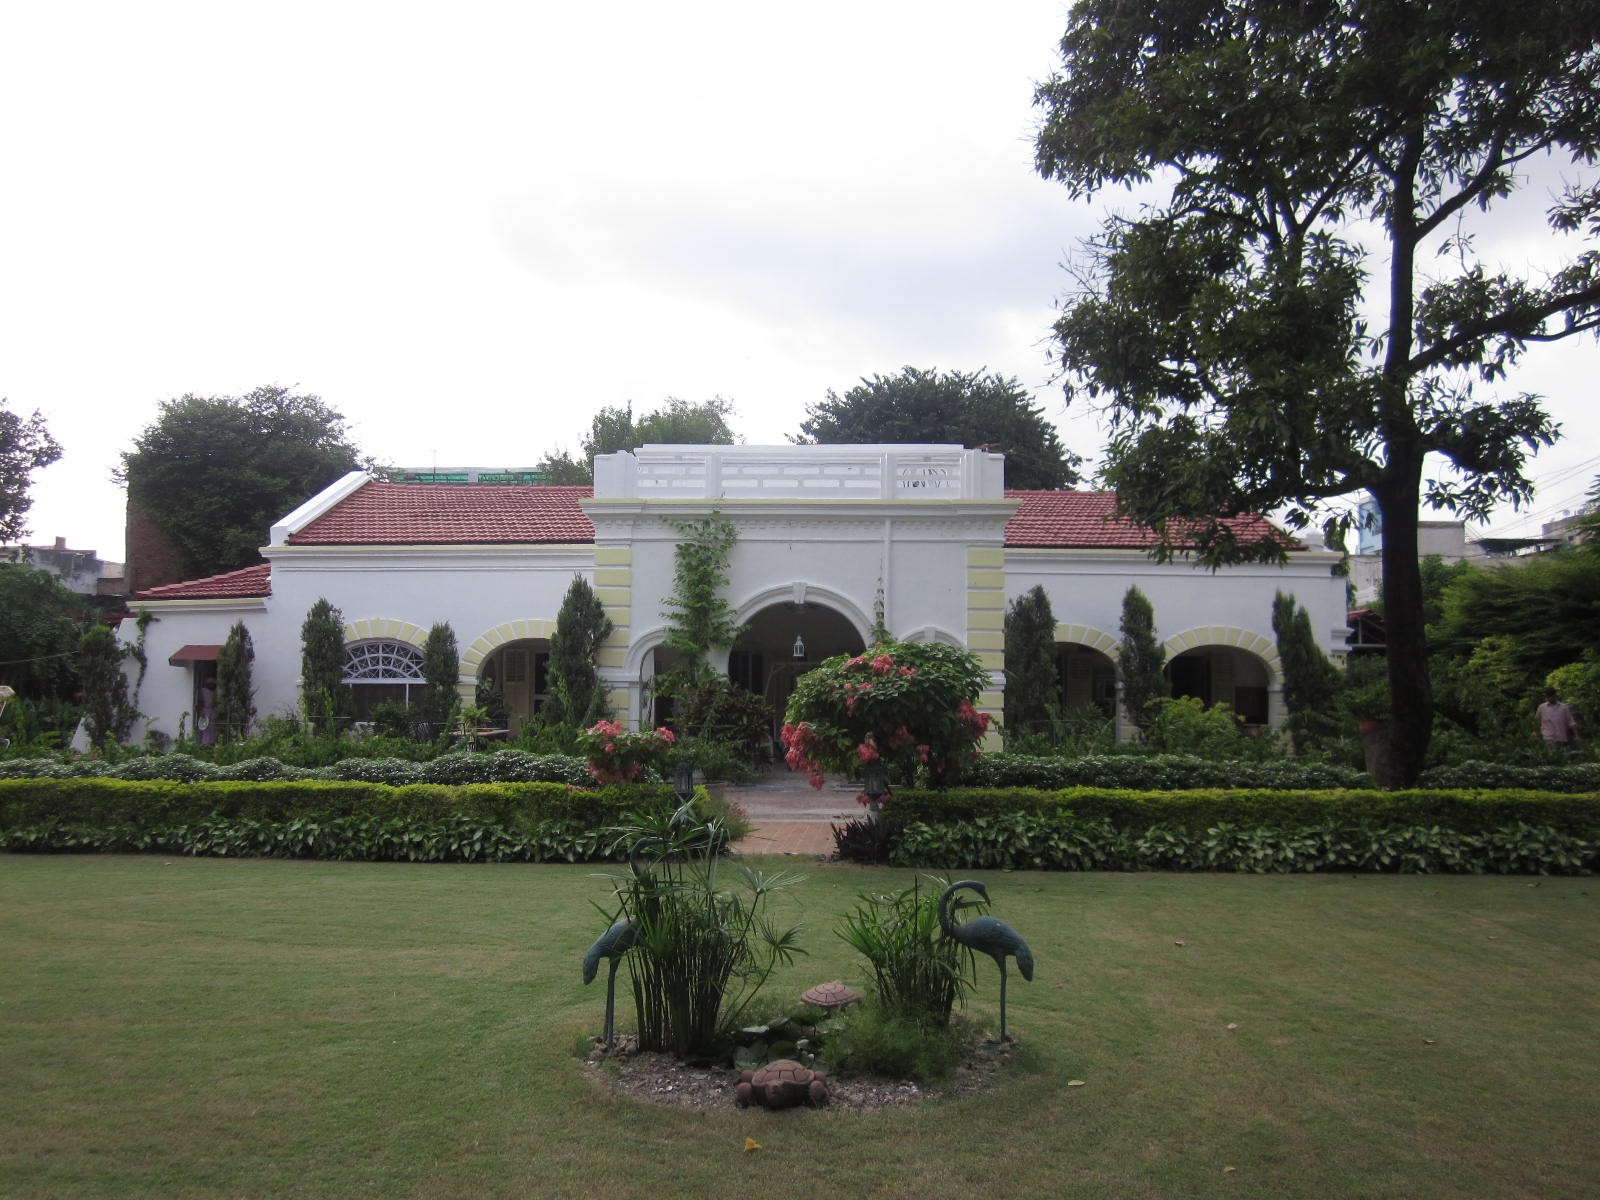 Bungalow One - Civil Lines - Allahabad Image